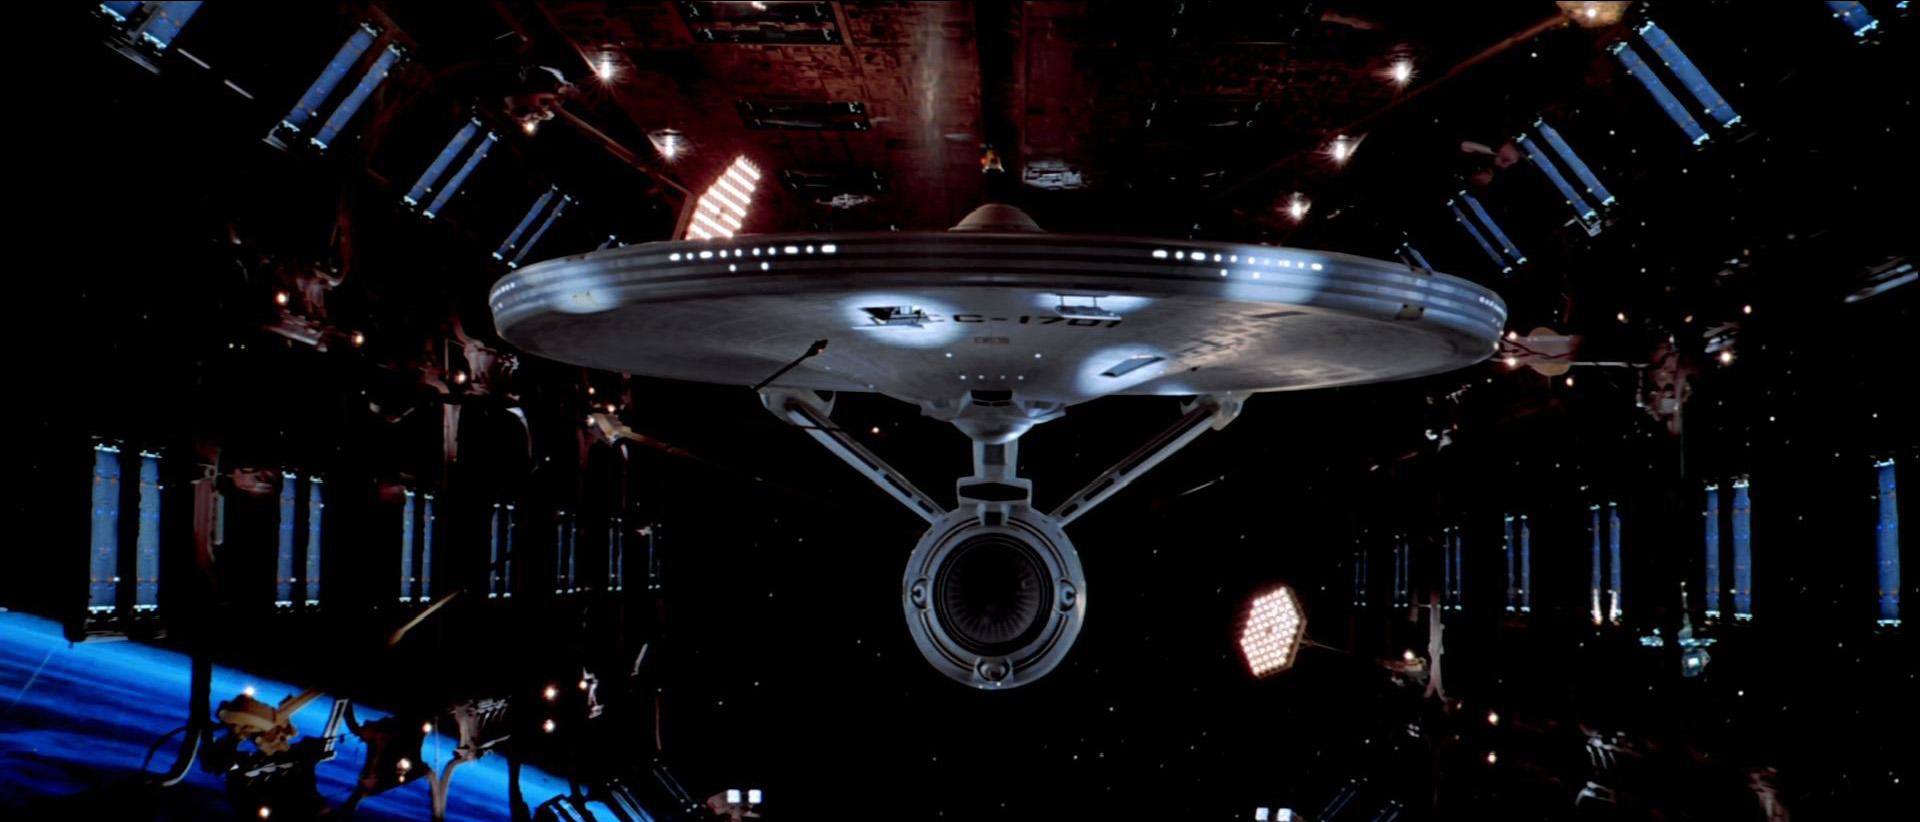 star-trek-motion-picture-enterprise.jpg